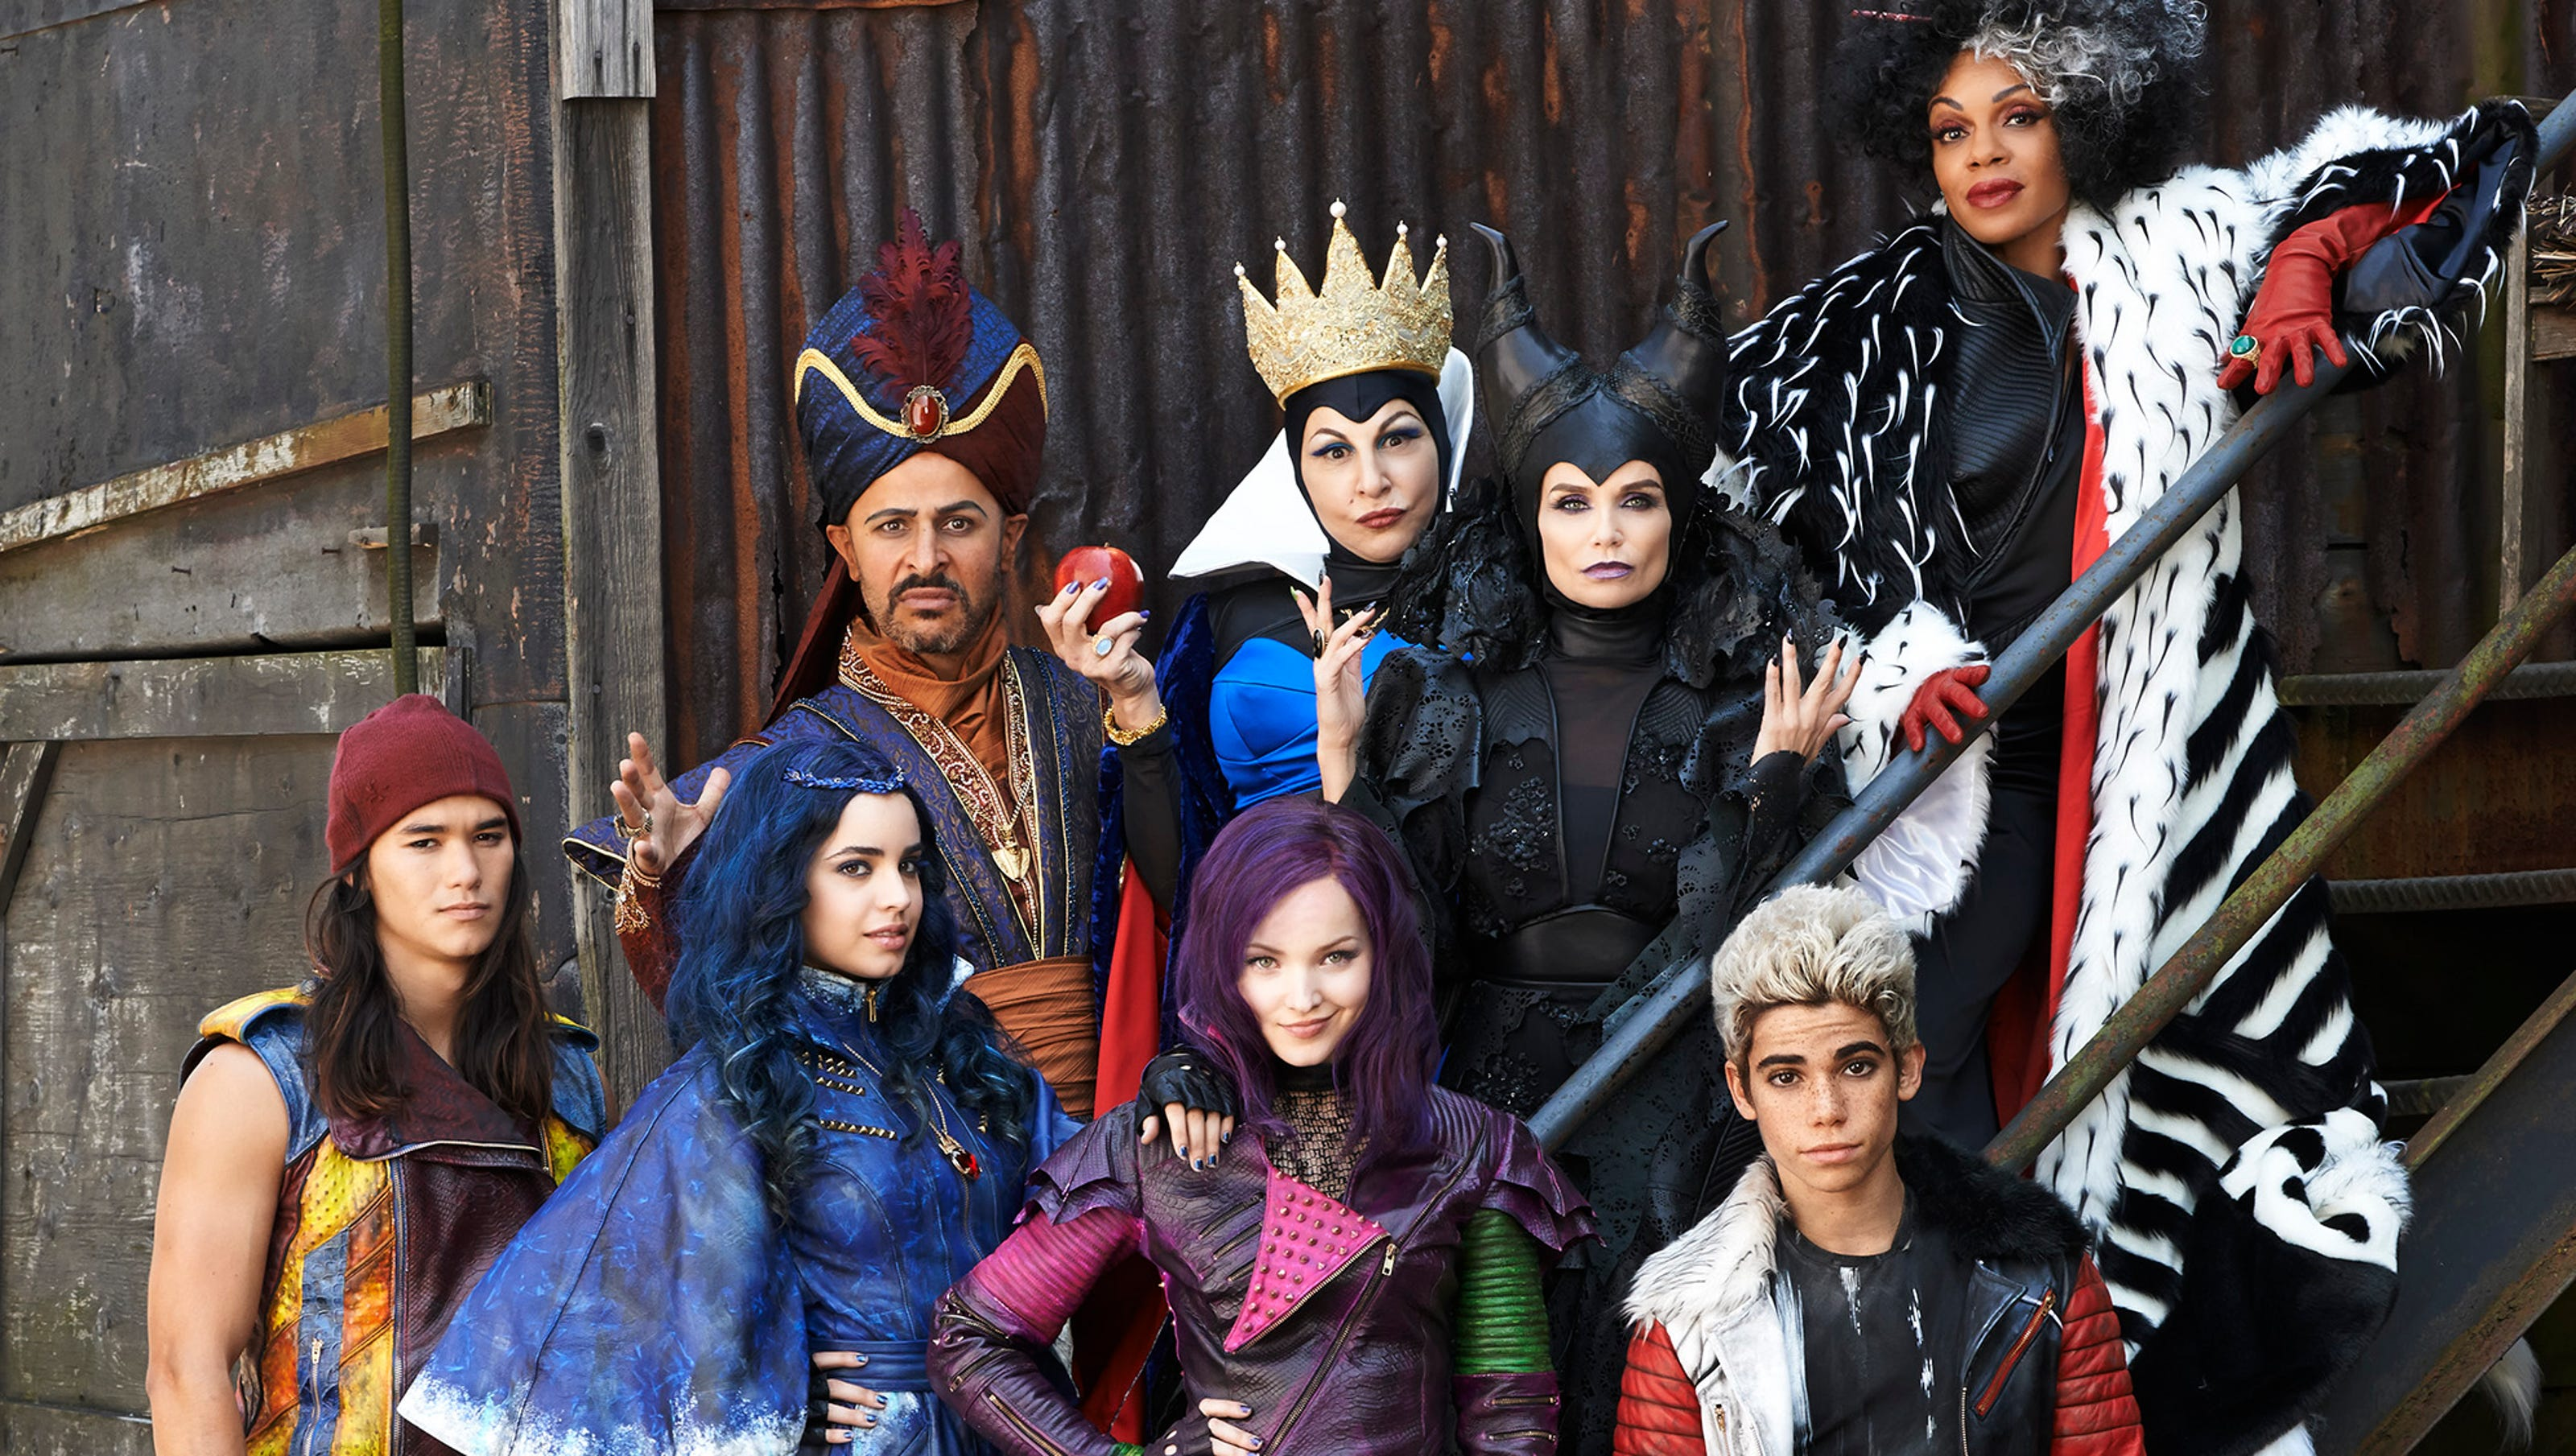 Descendants is a Disney Channel Original Movie and first installment that premiered on July 31 2015 It was released by Walt Disney Pictures and Disney Channel King